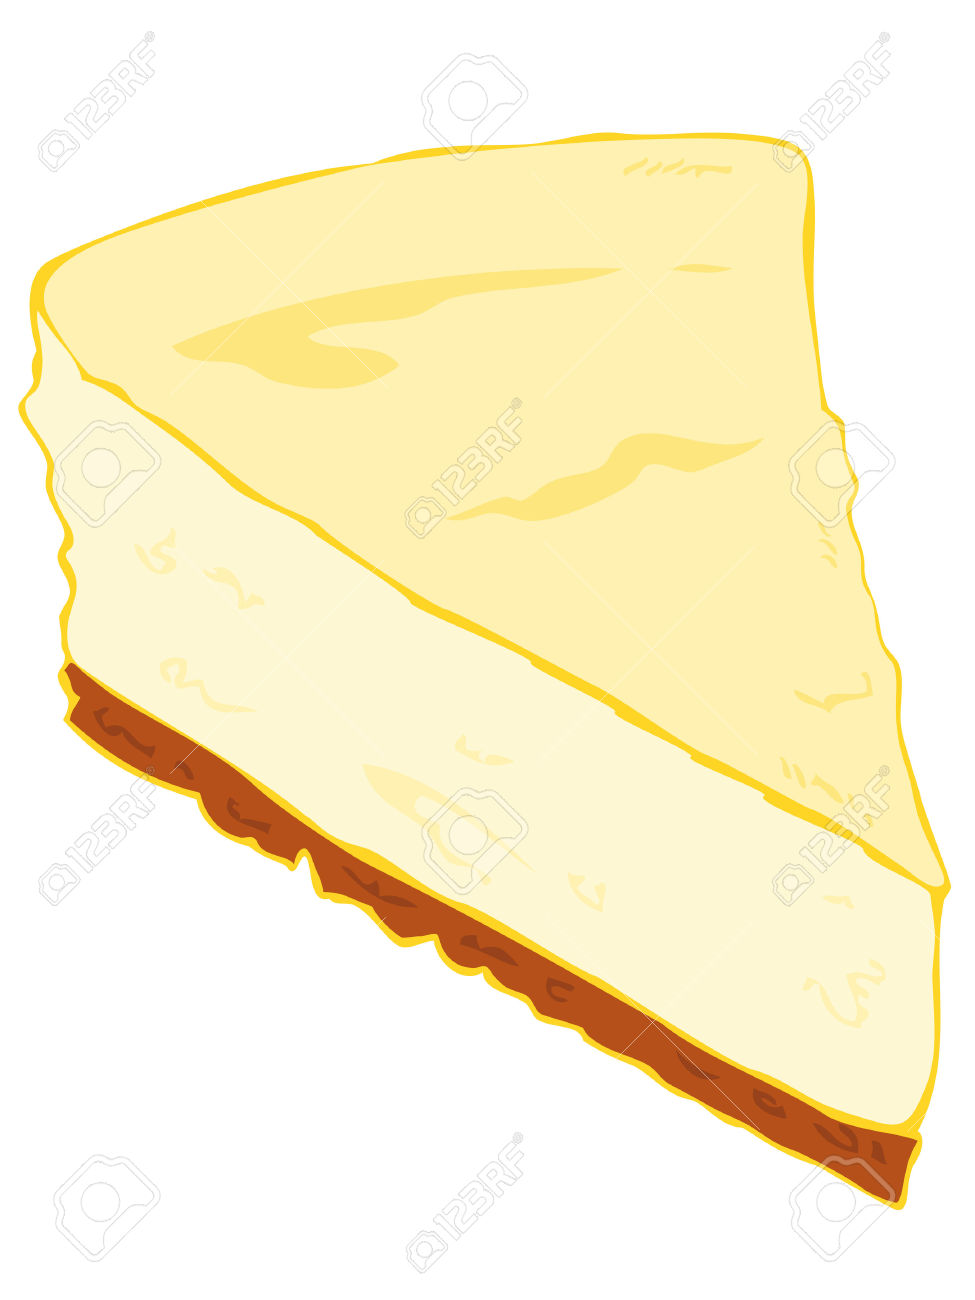 medium resolution of 975x1300 cheesecake clipart cartoon